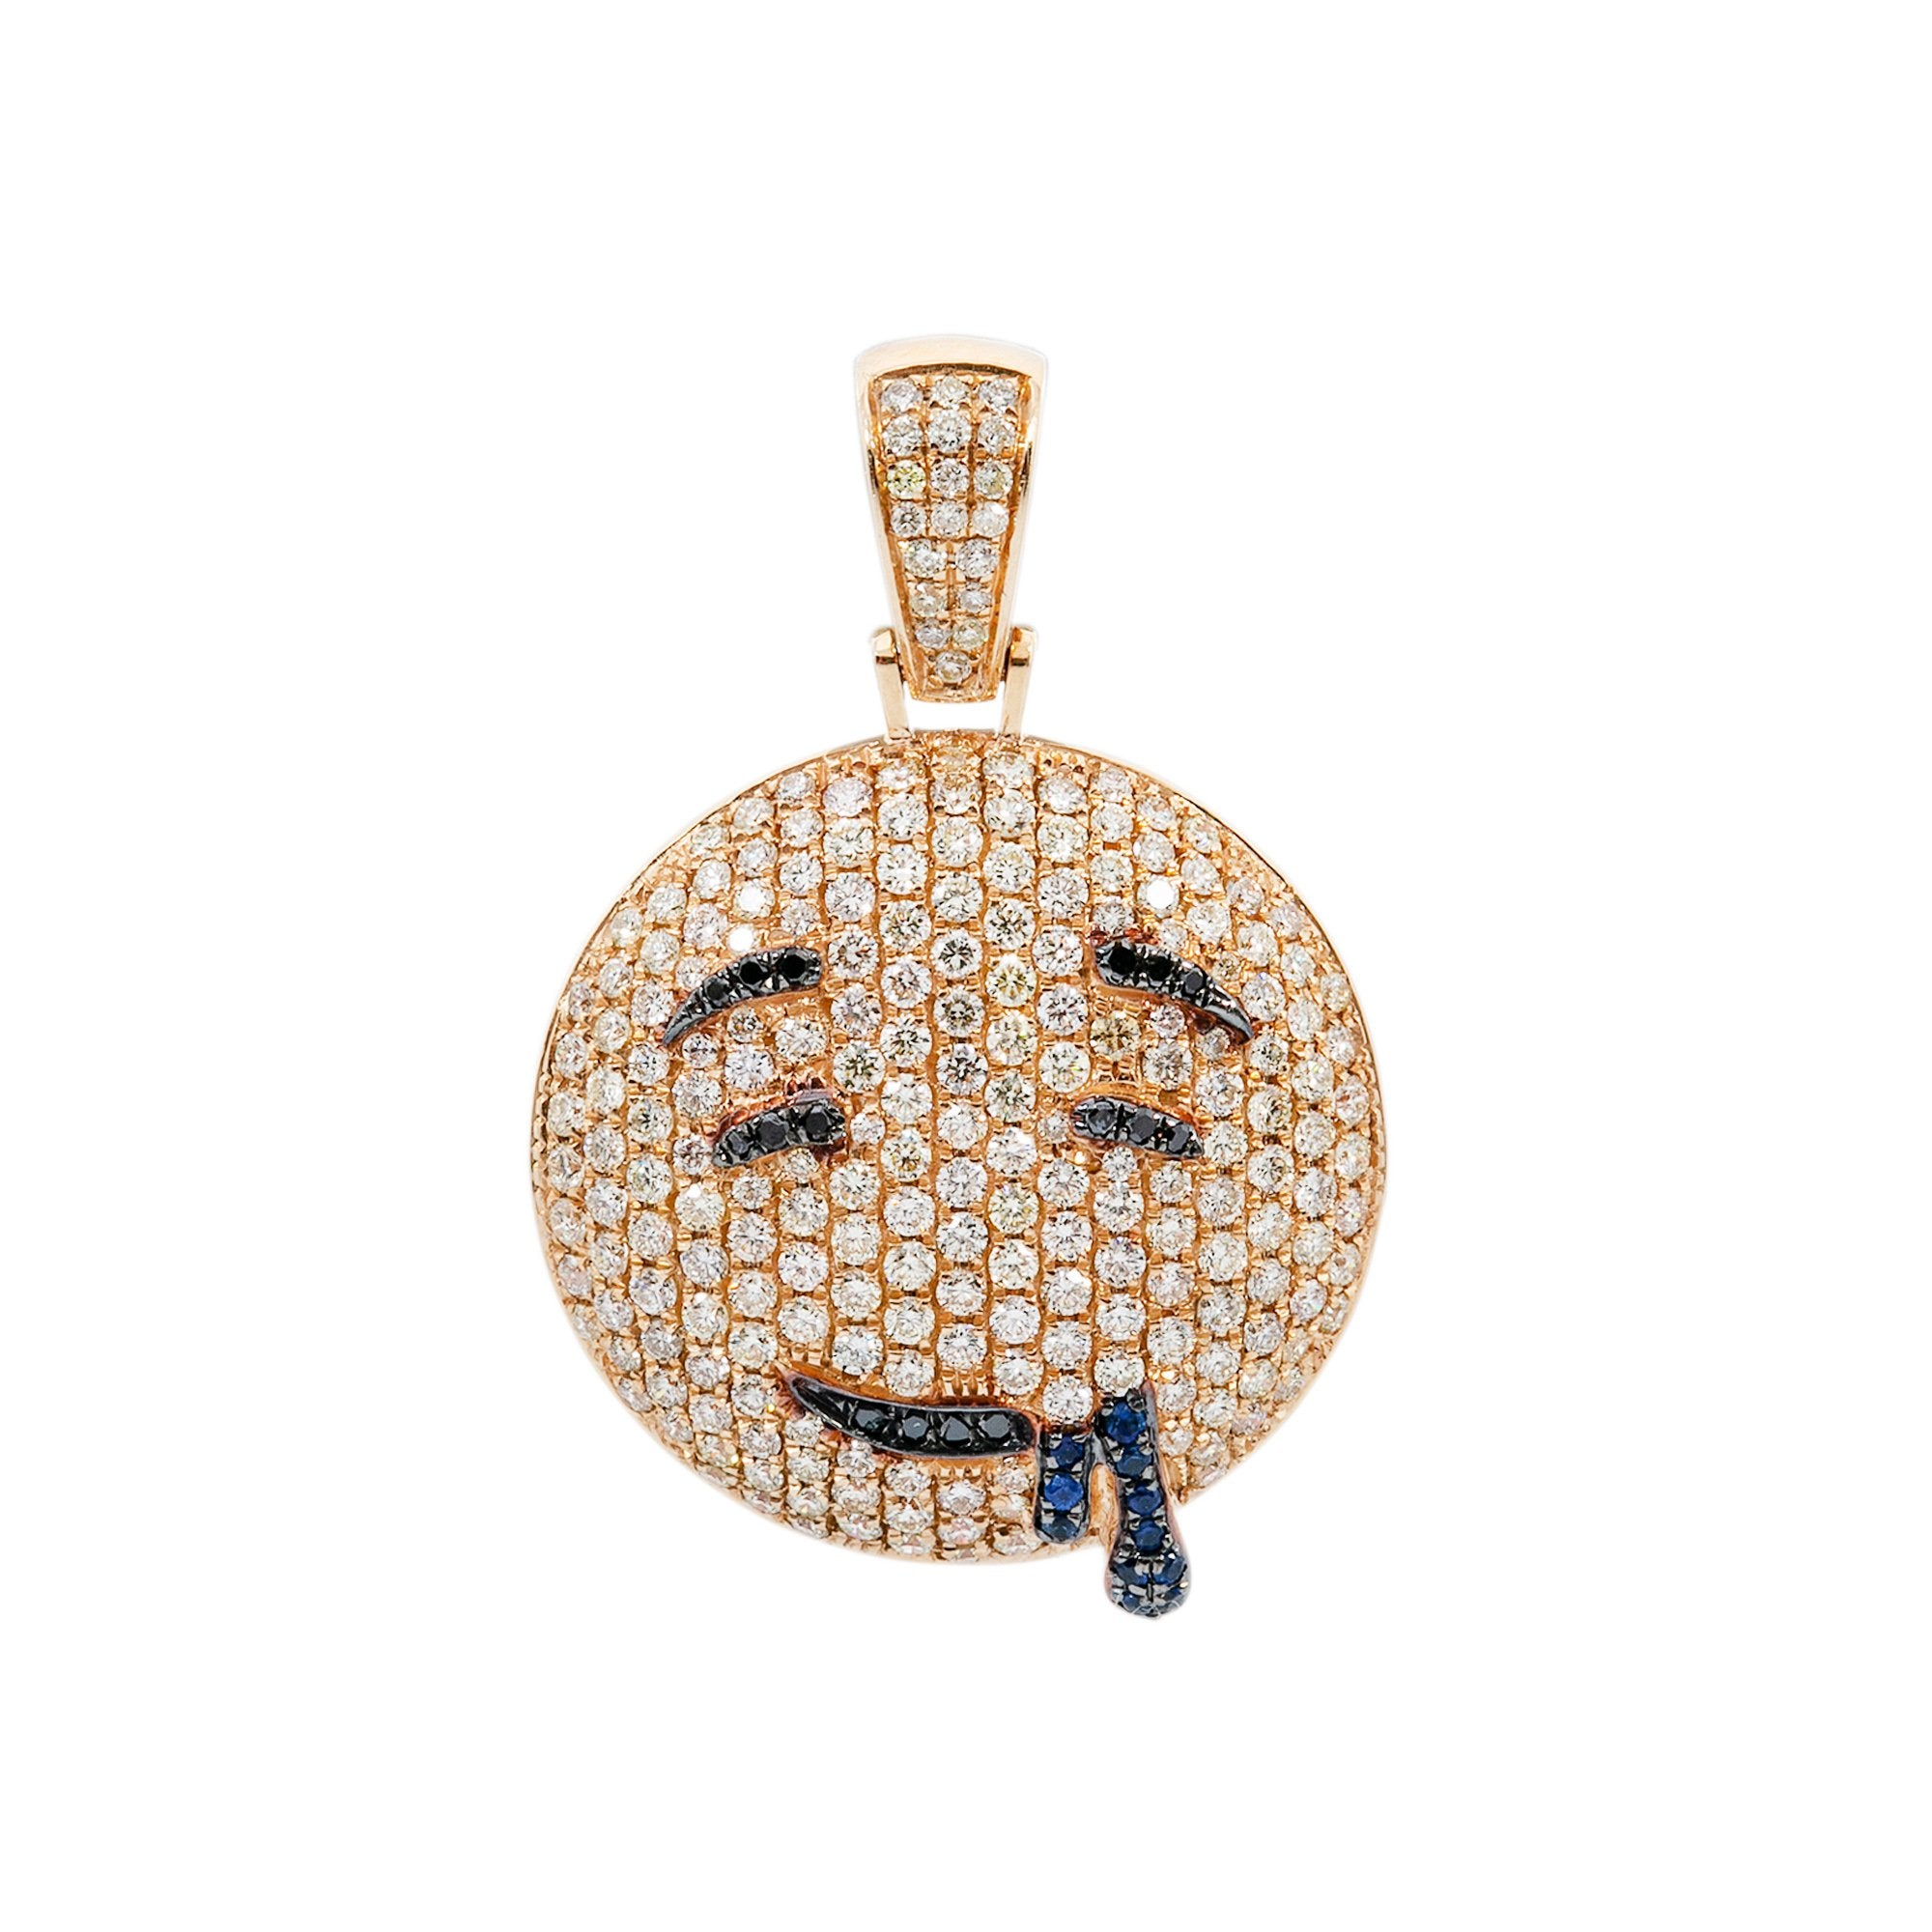 14k Yellow Gold Pendant with 2.59 Ct Diamonds